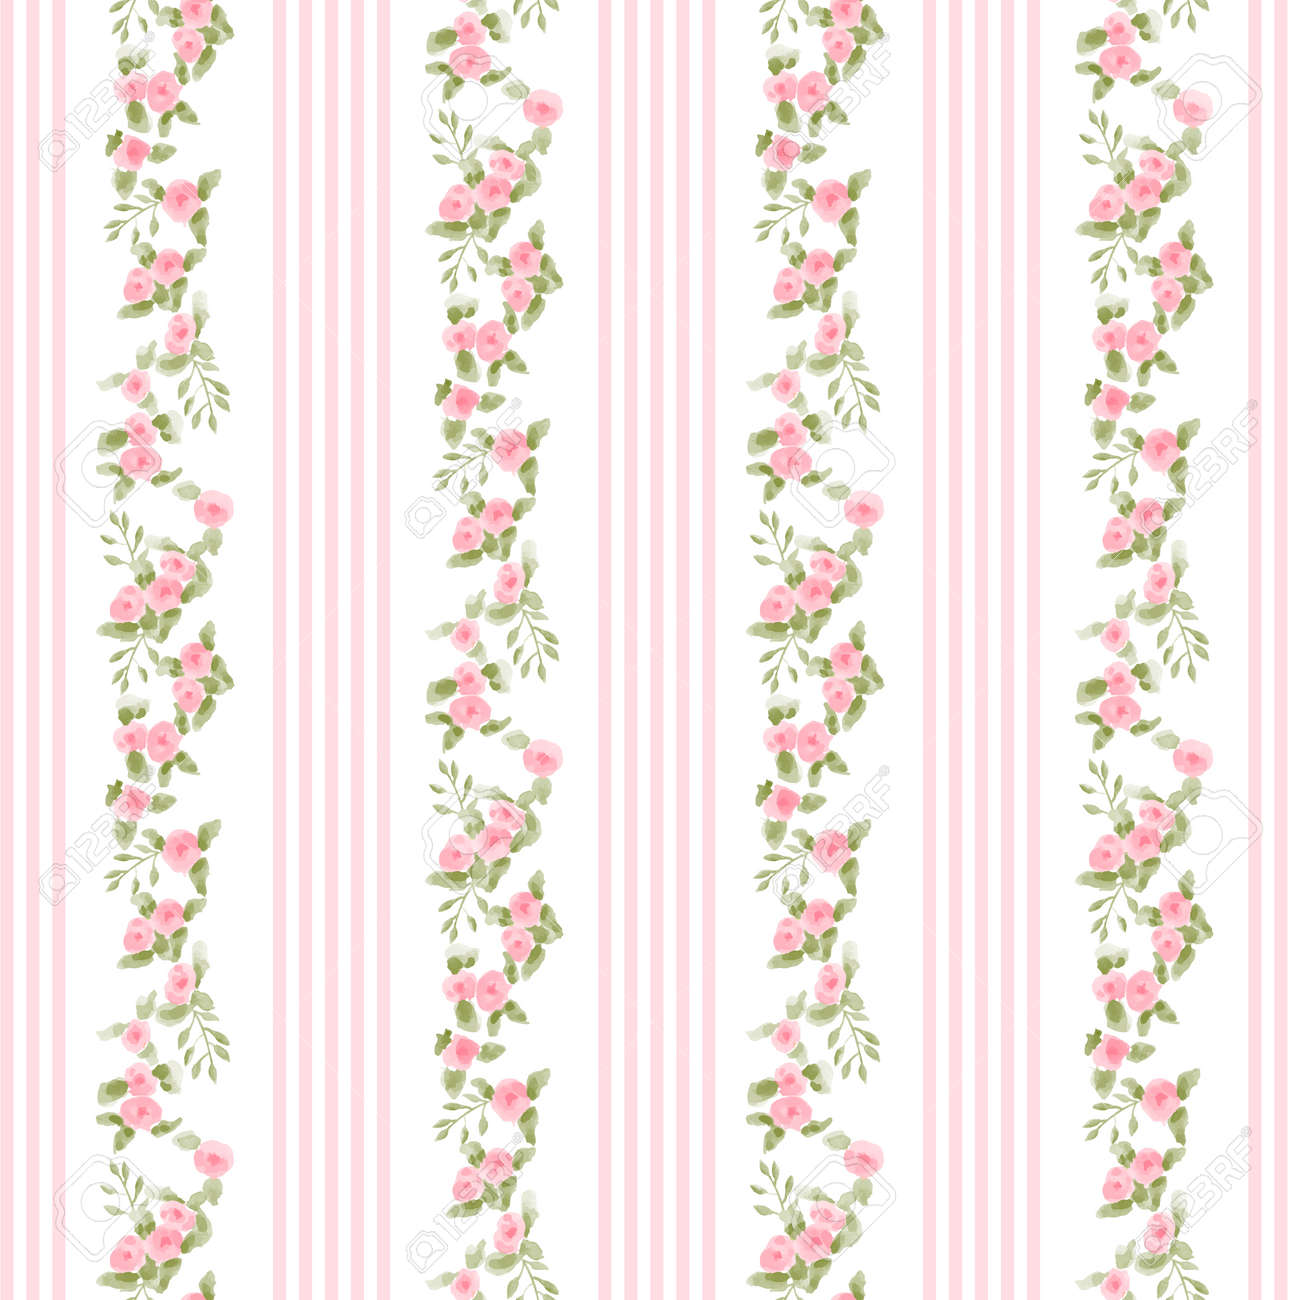 English Floral Pattern With Stripes Vector Floral Vintage